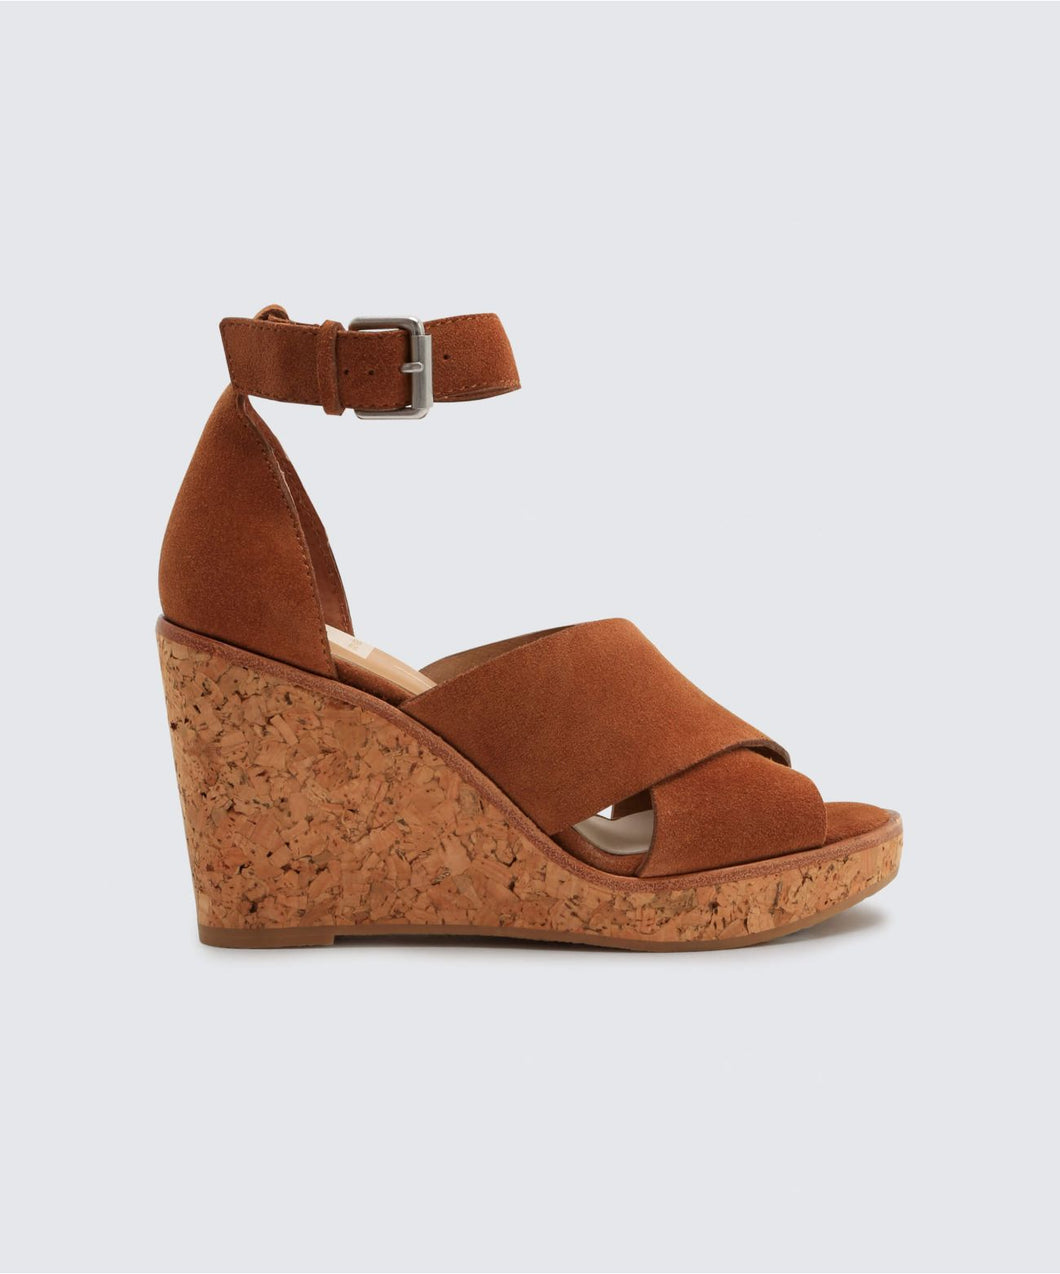 URBANE WEDGES BROWN -   Dolce Vita